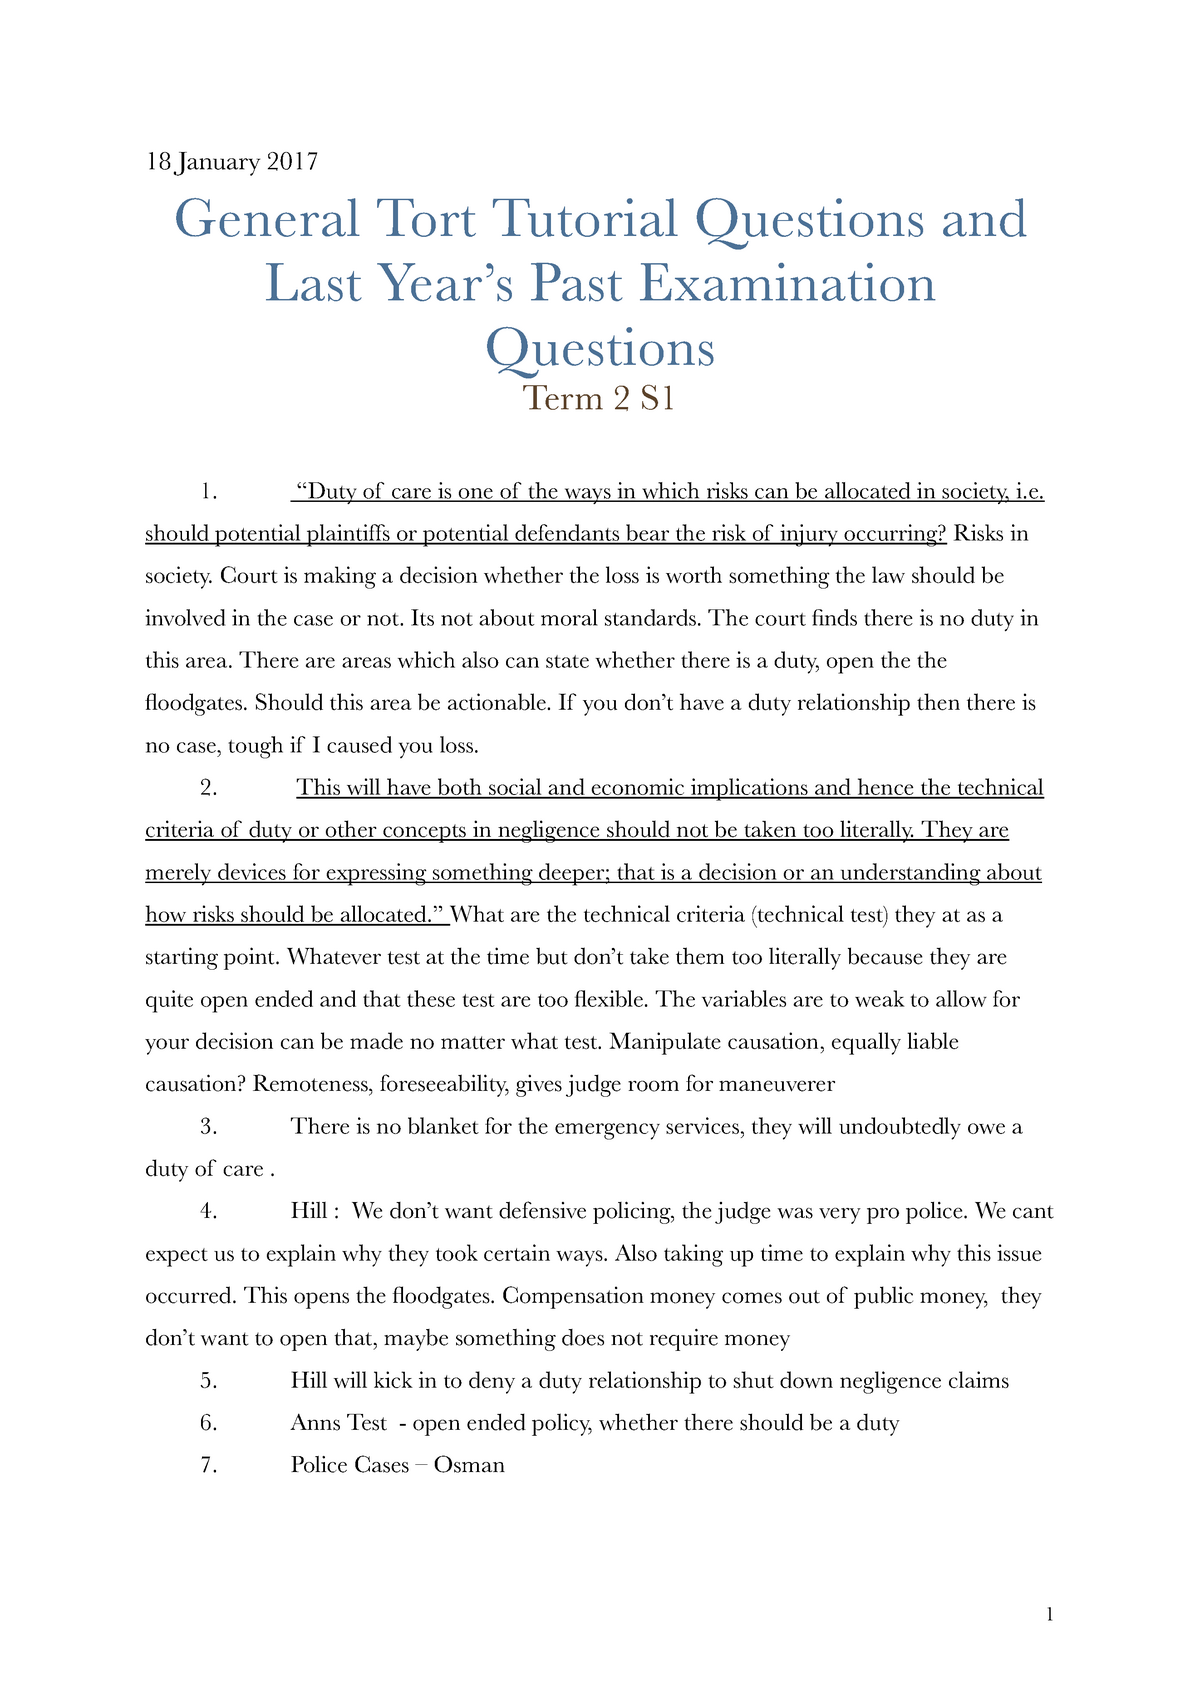 General Tort Tutorial Questions and Last Year's Past